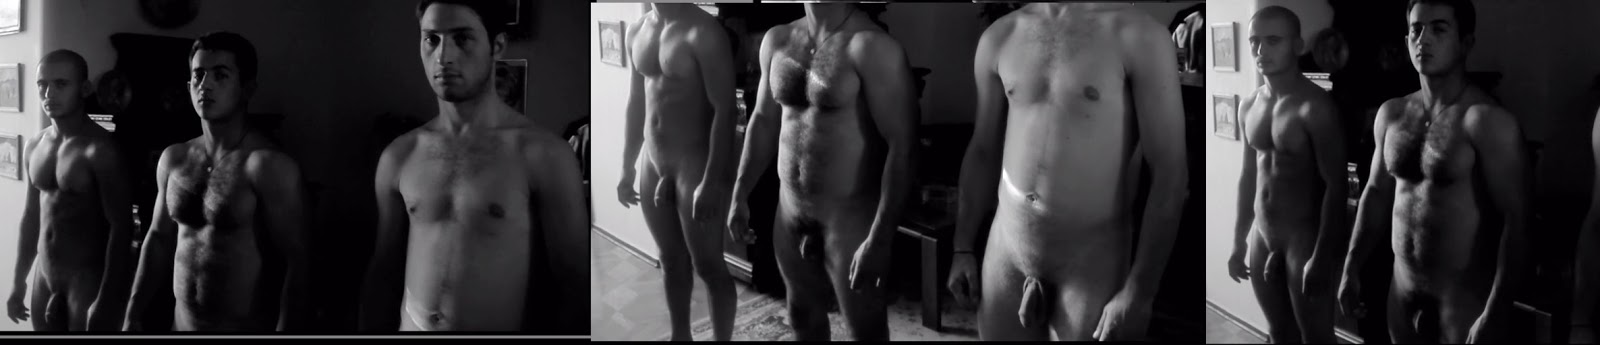 naked hunks in movie